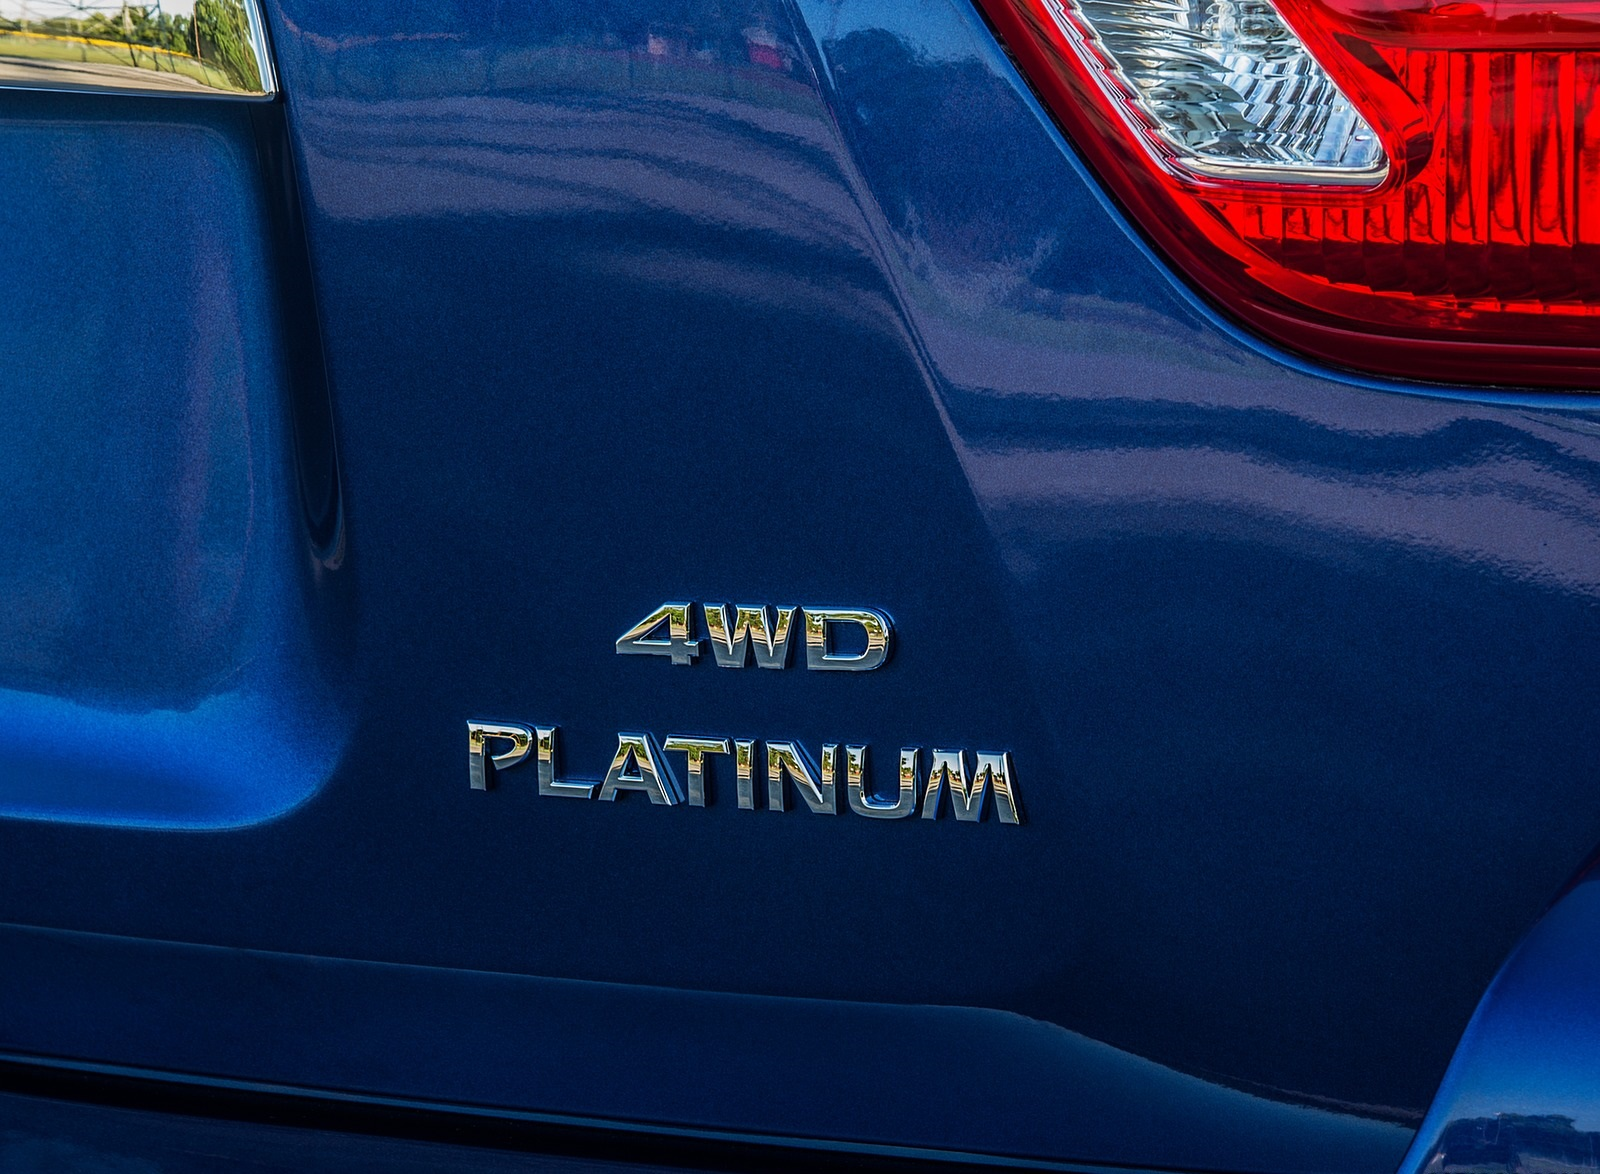 2020 Nissan Pathfinder Platinum 4WD Badge Wallpapers (9)